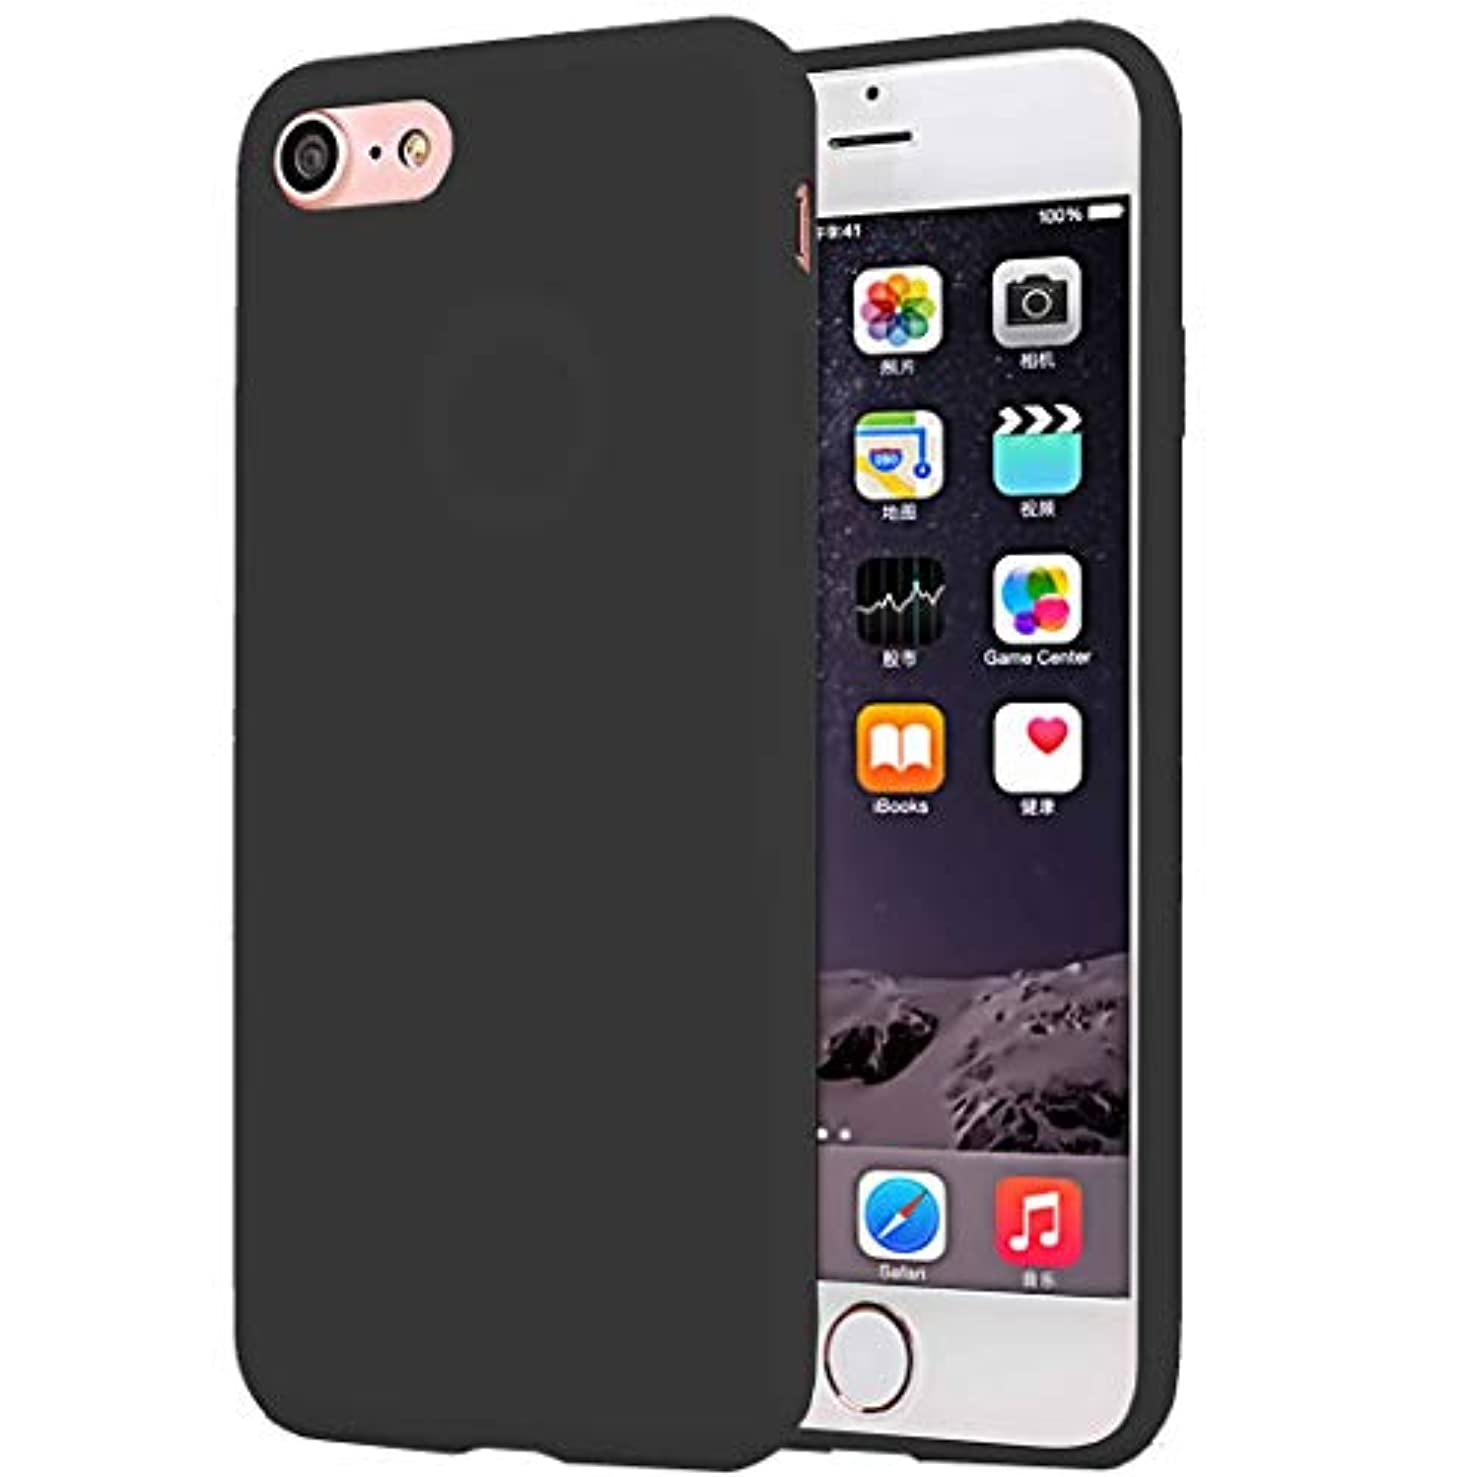 CaseHQ Compatible with iPhone 6S Case, iPhone 6 Case, Minimalist Ultra Thin Slim Fit Silicone Gel Rubber Case,Shock Absorption Anti Scratch Finish Cover TPU Cases - Black